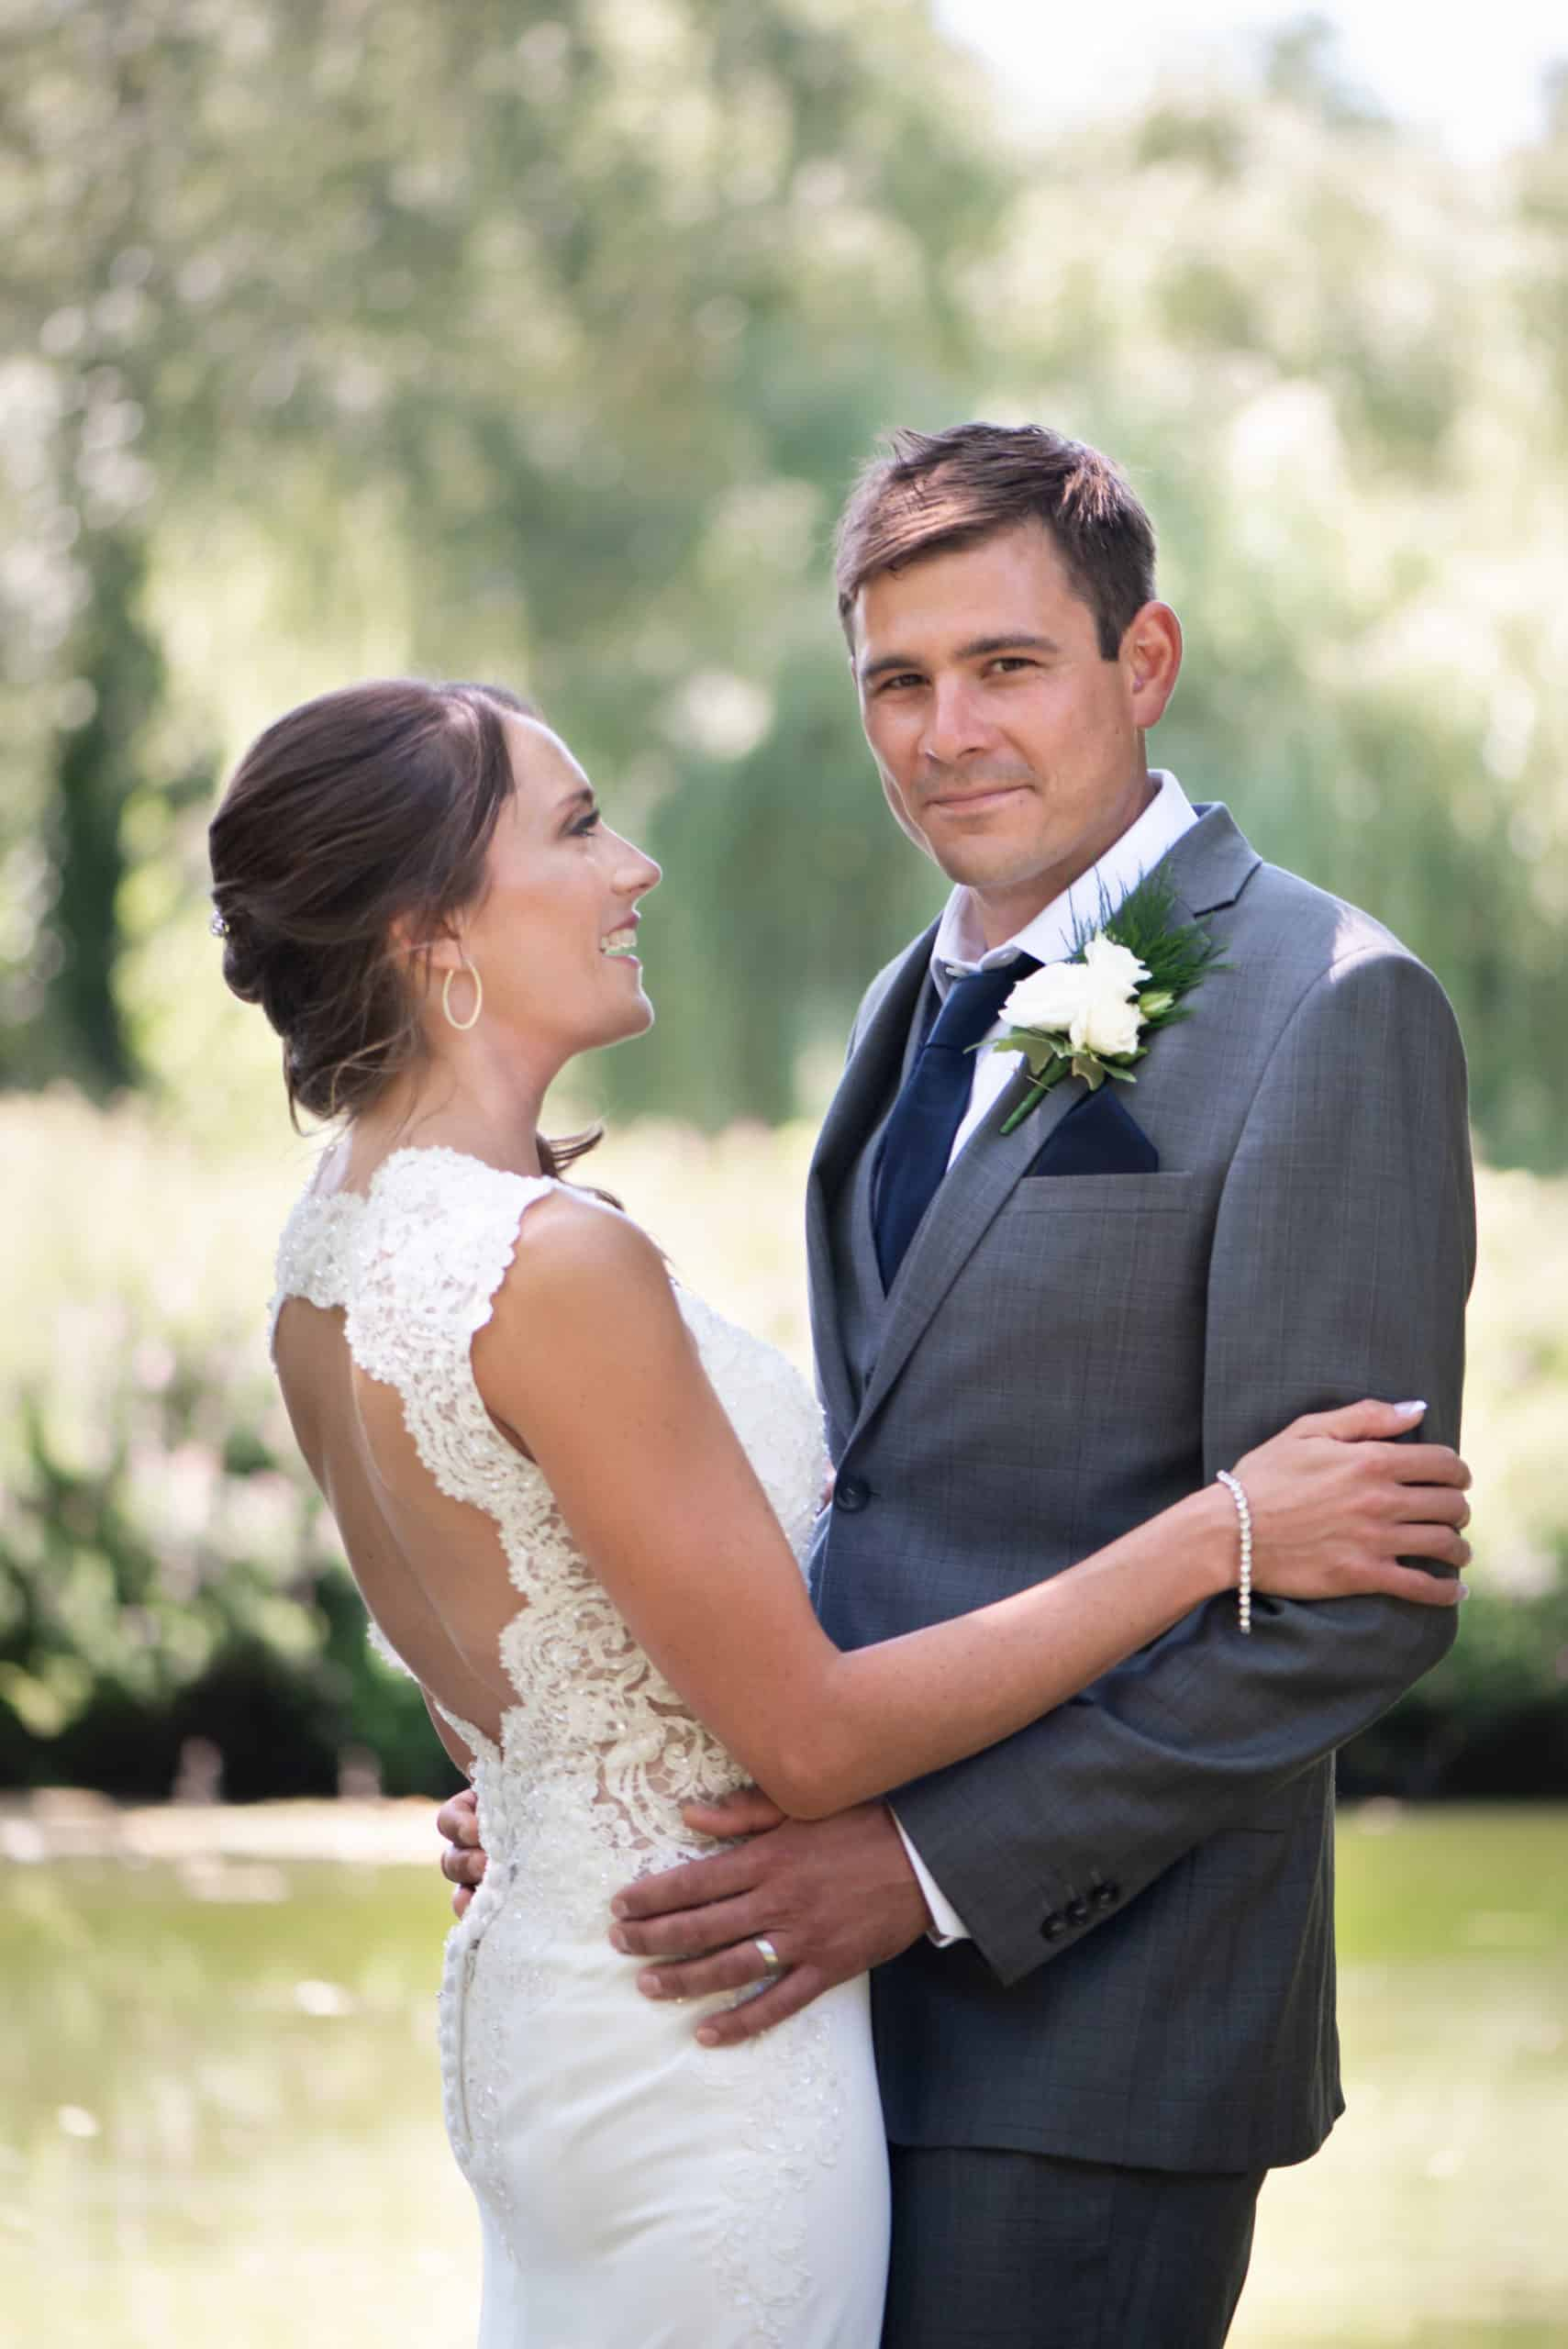 couple shots of bride and groom, concentrating on the groom and stood by the lake at Botleigh grange hotel and spa in Southampton